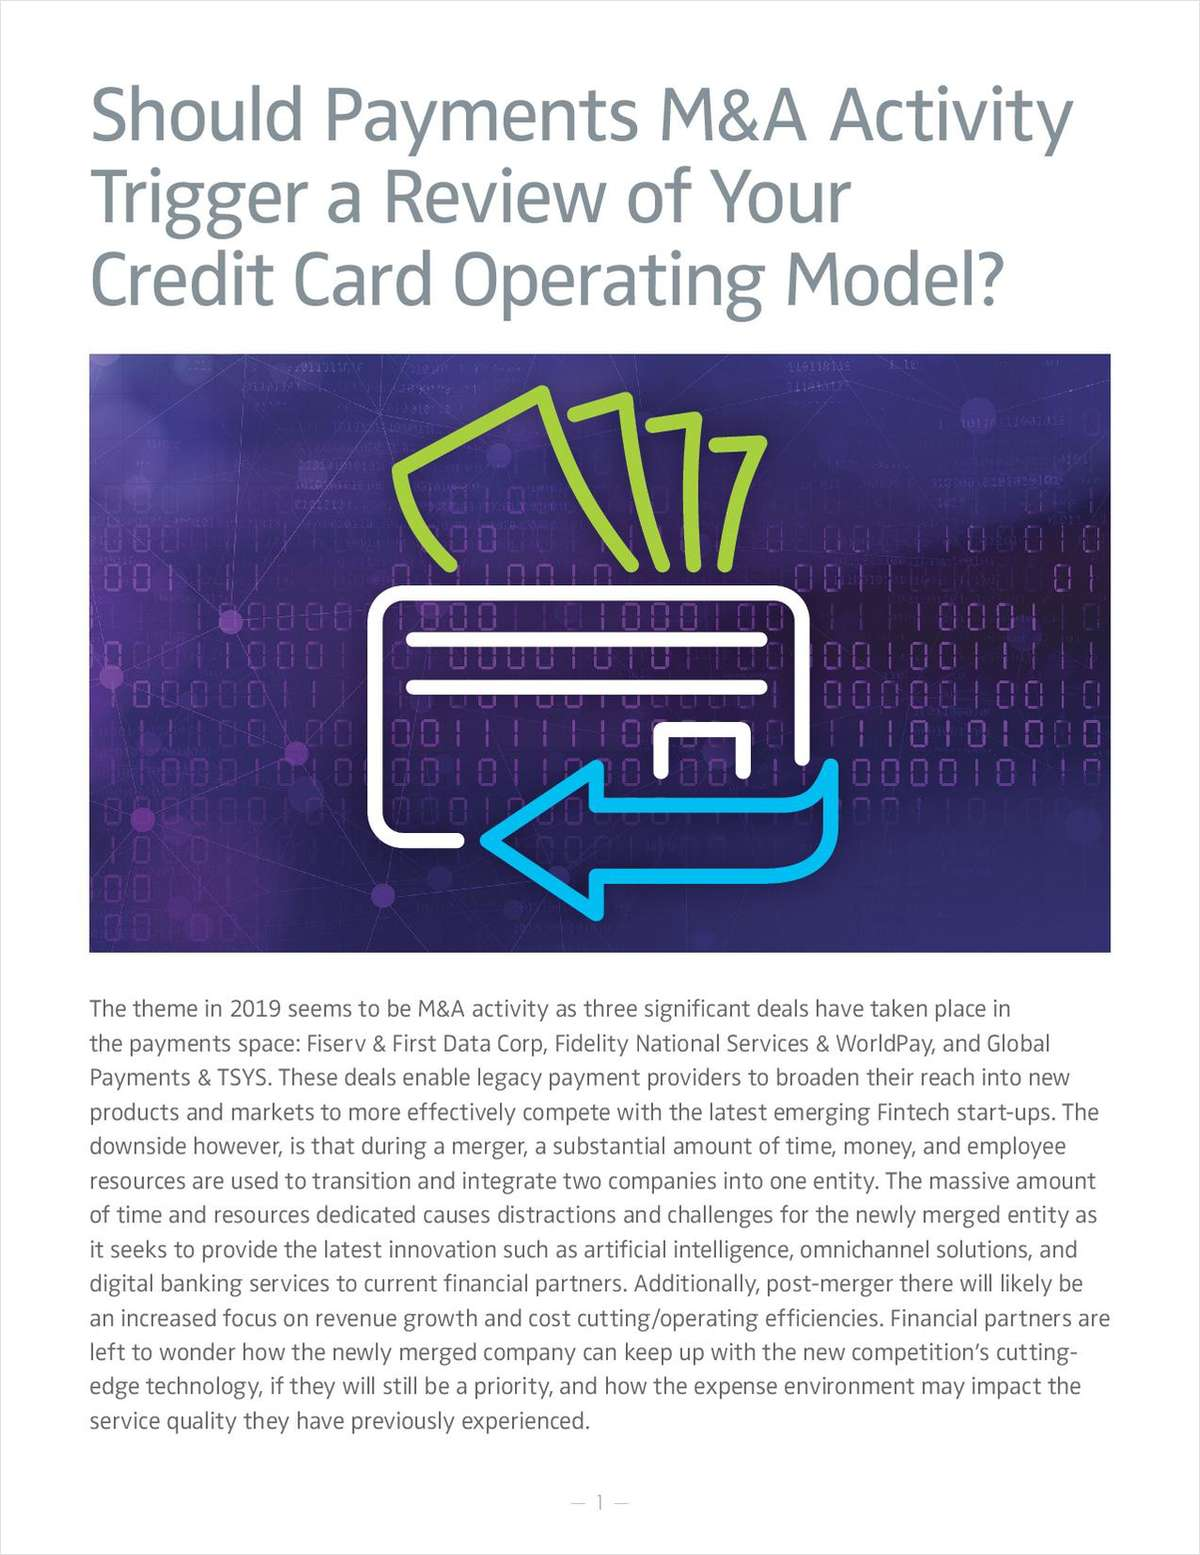 Should Payments M&A Activity Trigger a Review of Your Credit Card Operating Model?